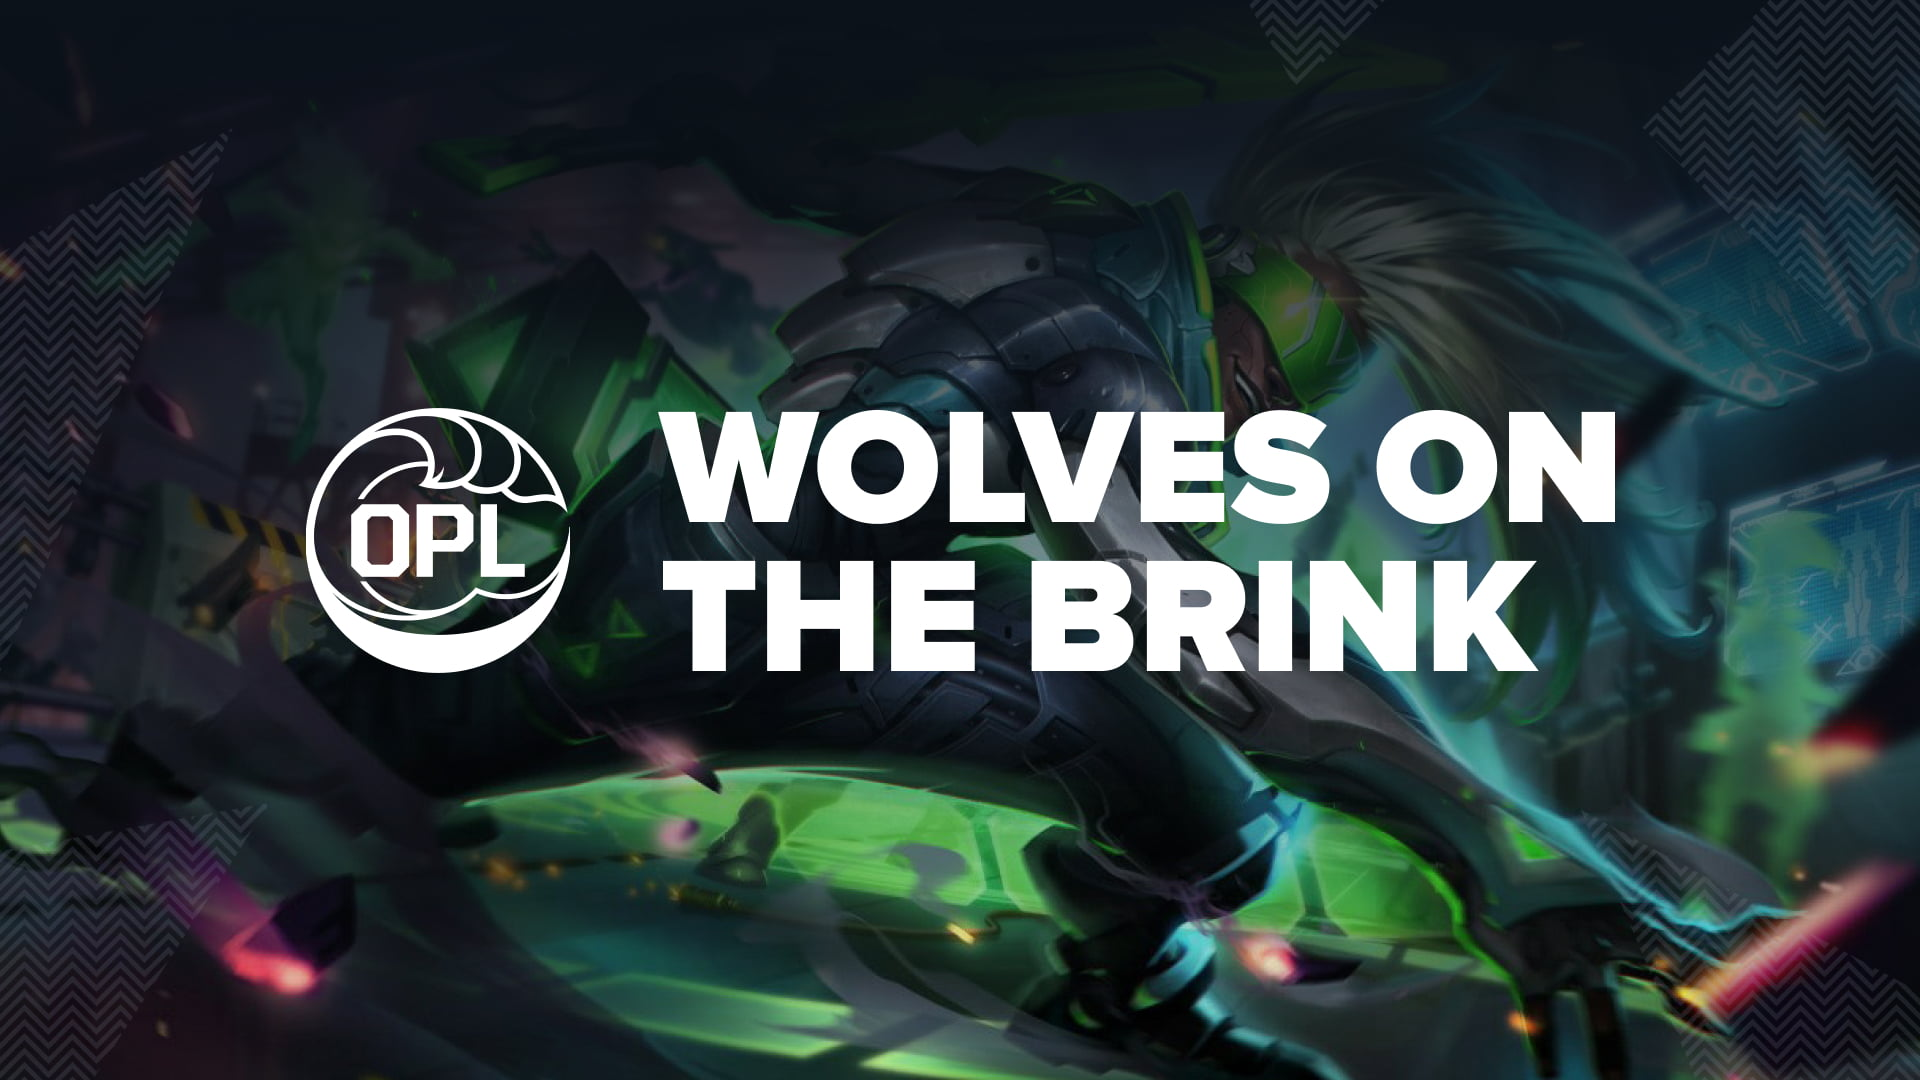 The Wolves on brink of making OPL history